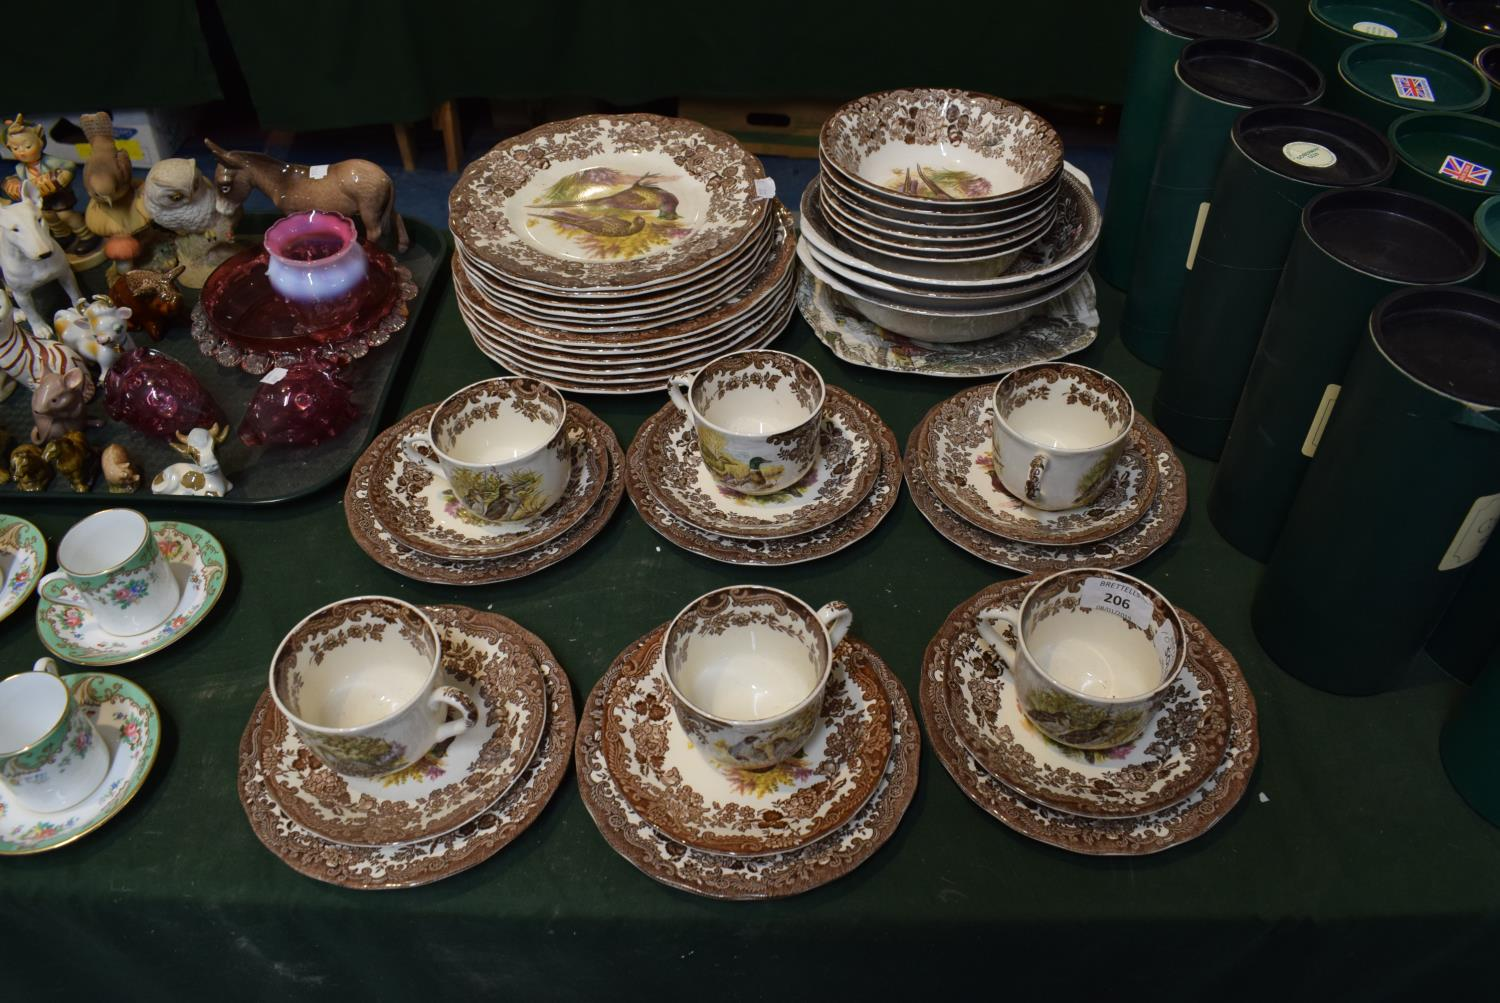 Lot 232 - A Collection of Royal Worcester Palissy Game Series and Other Tea and Dinnerwares to Include Six